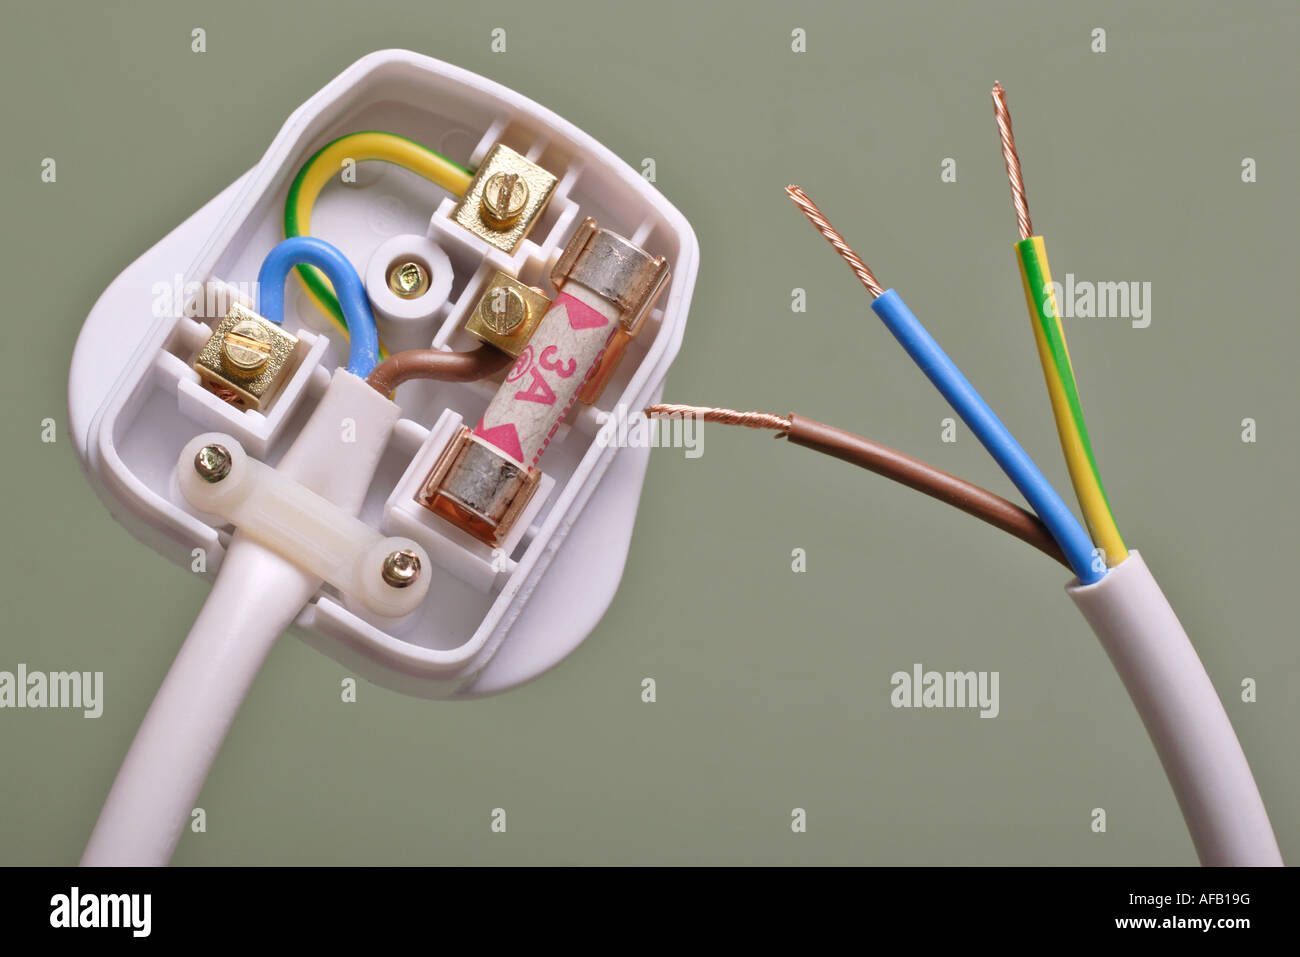 Uk Three Pin Electrical Plug 3 Amp Fuse Stock Photo 13889787 Alamy Wiring An In The